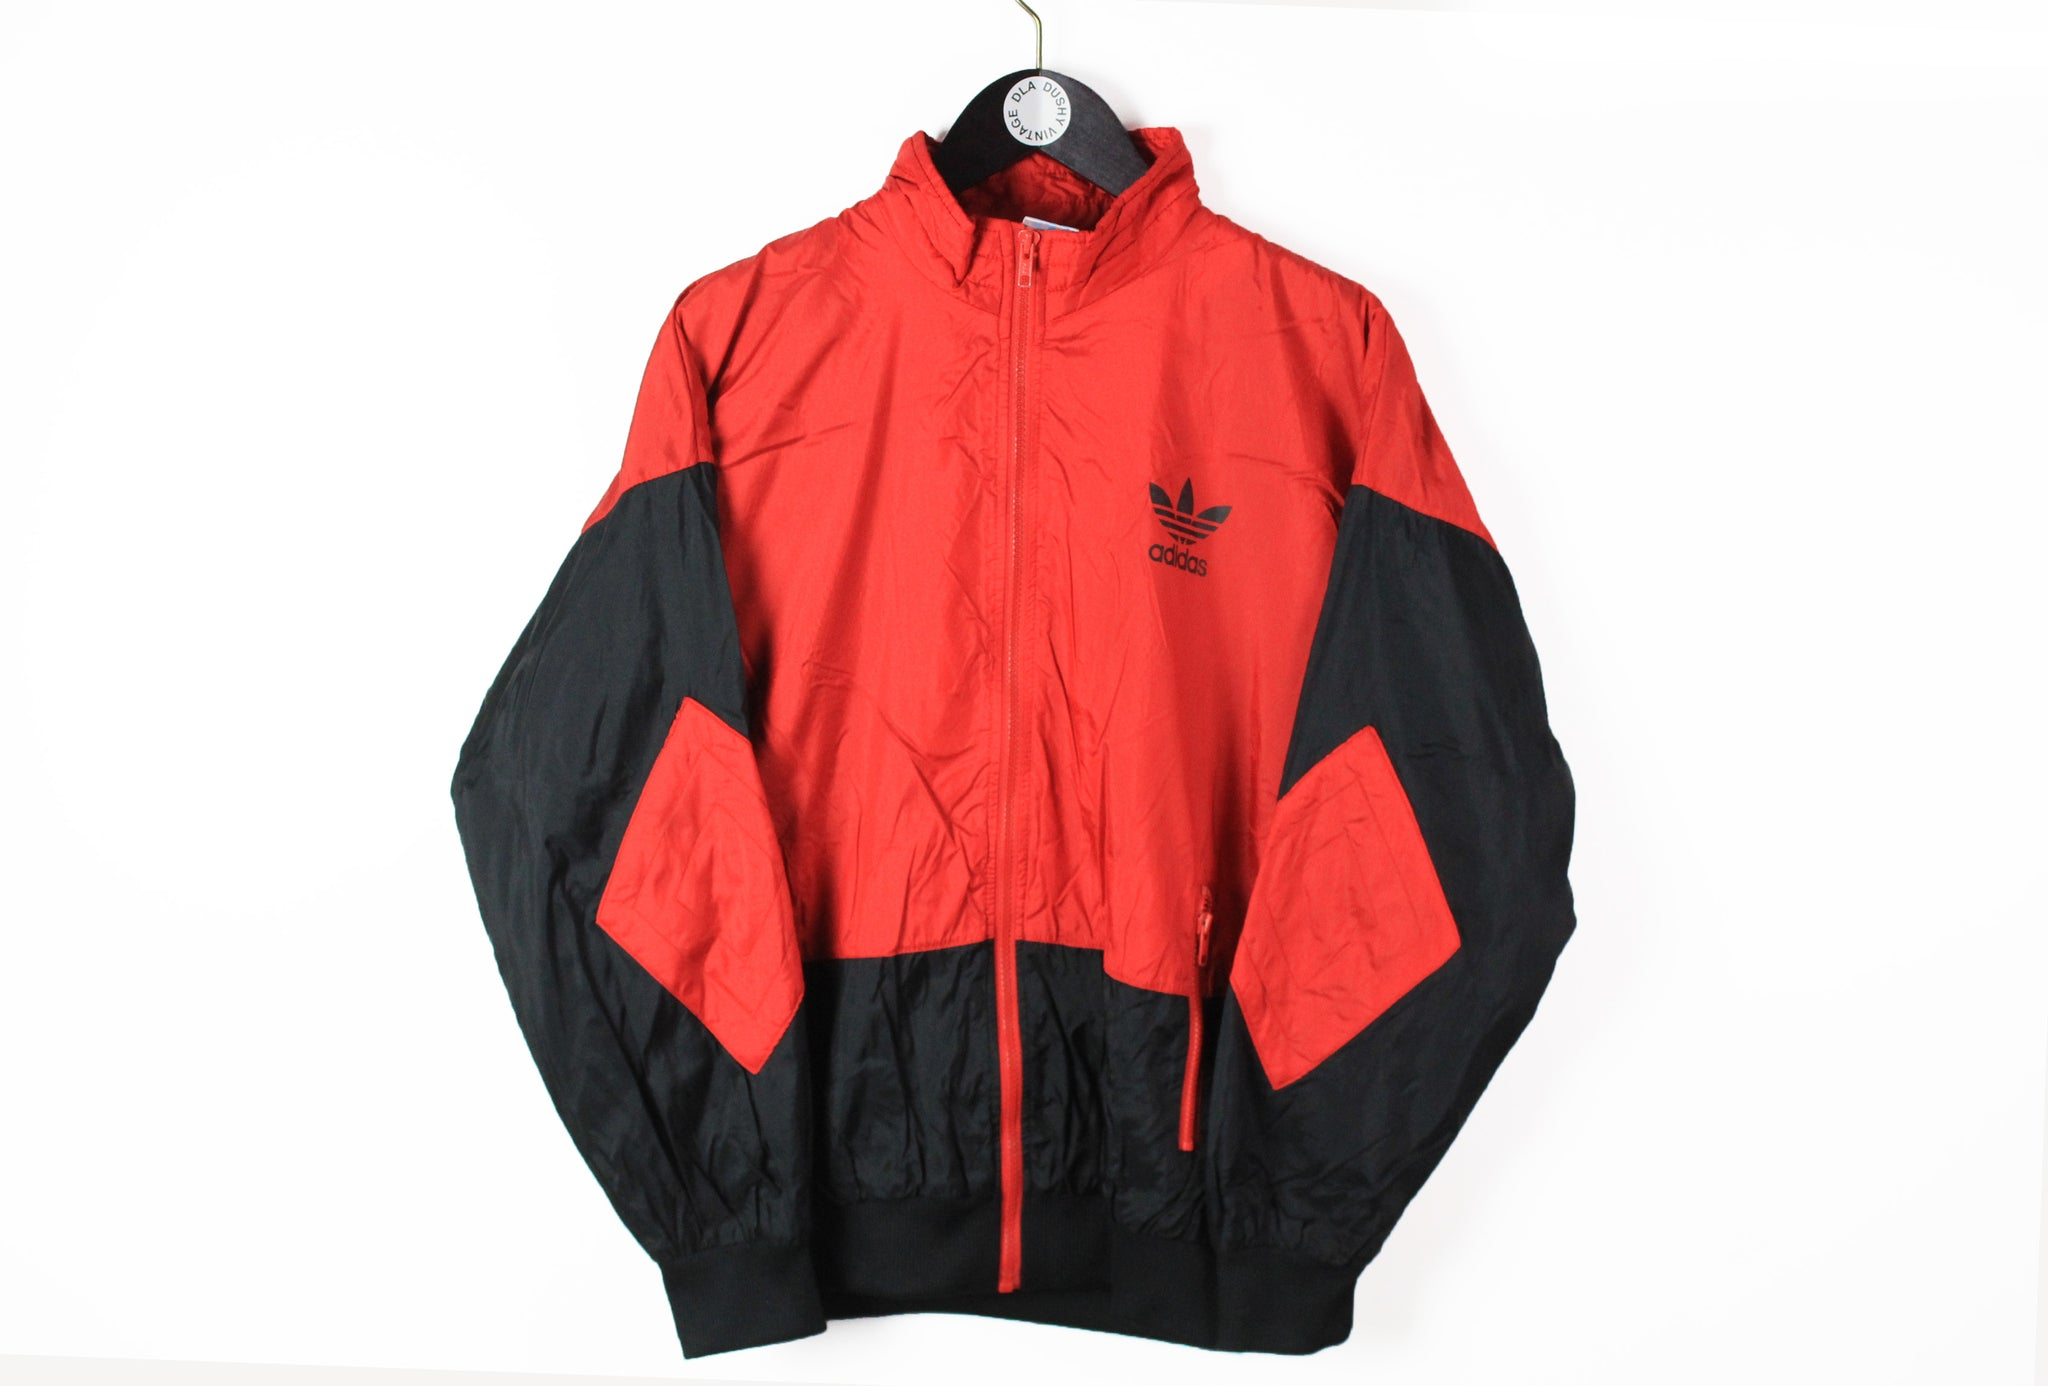 Vintage Adidas Track Jacket Medium black red 90s sport small logo retro style windbraeker